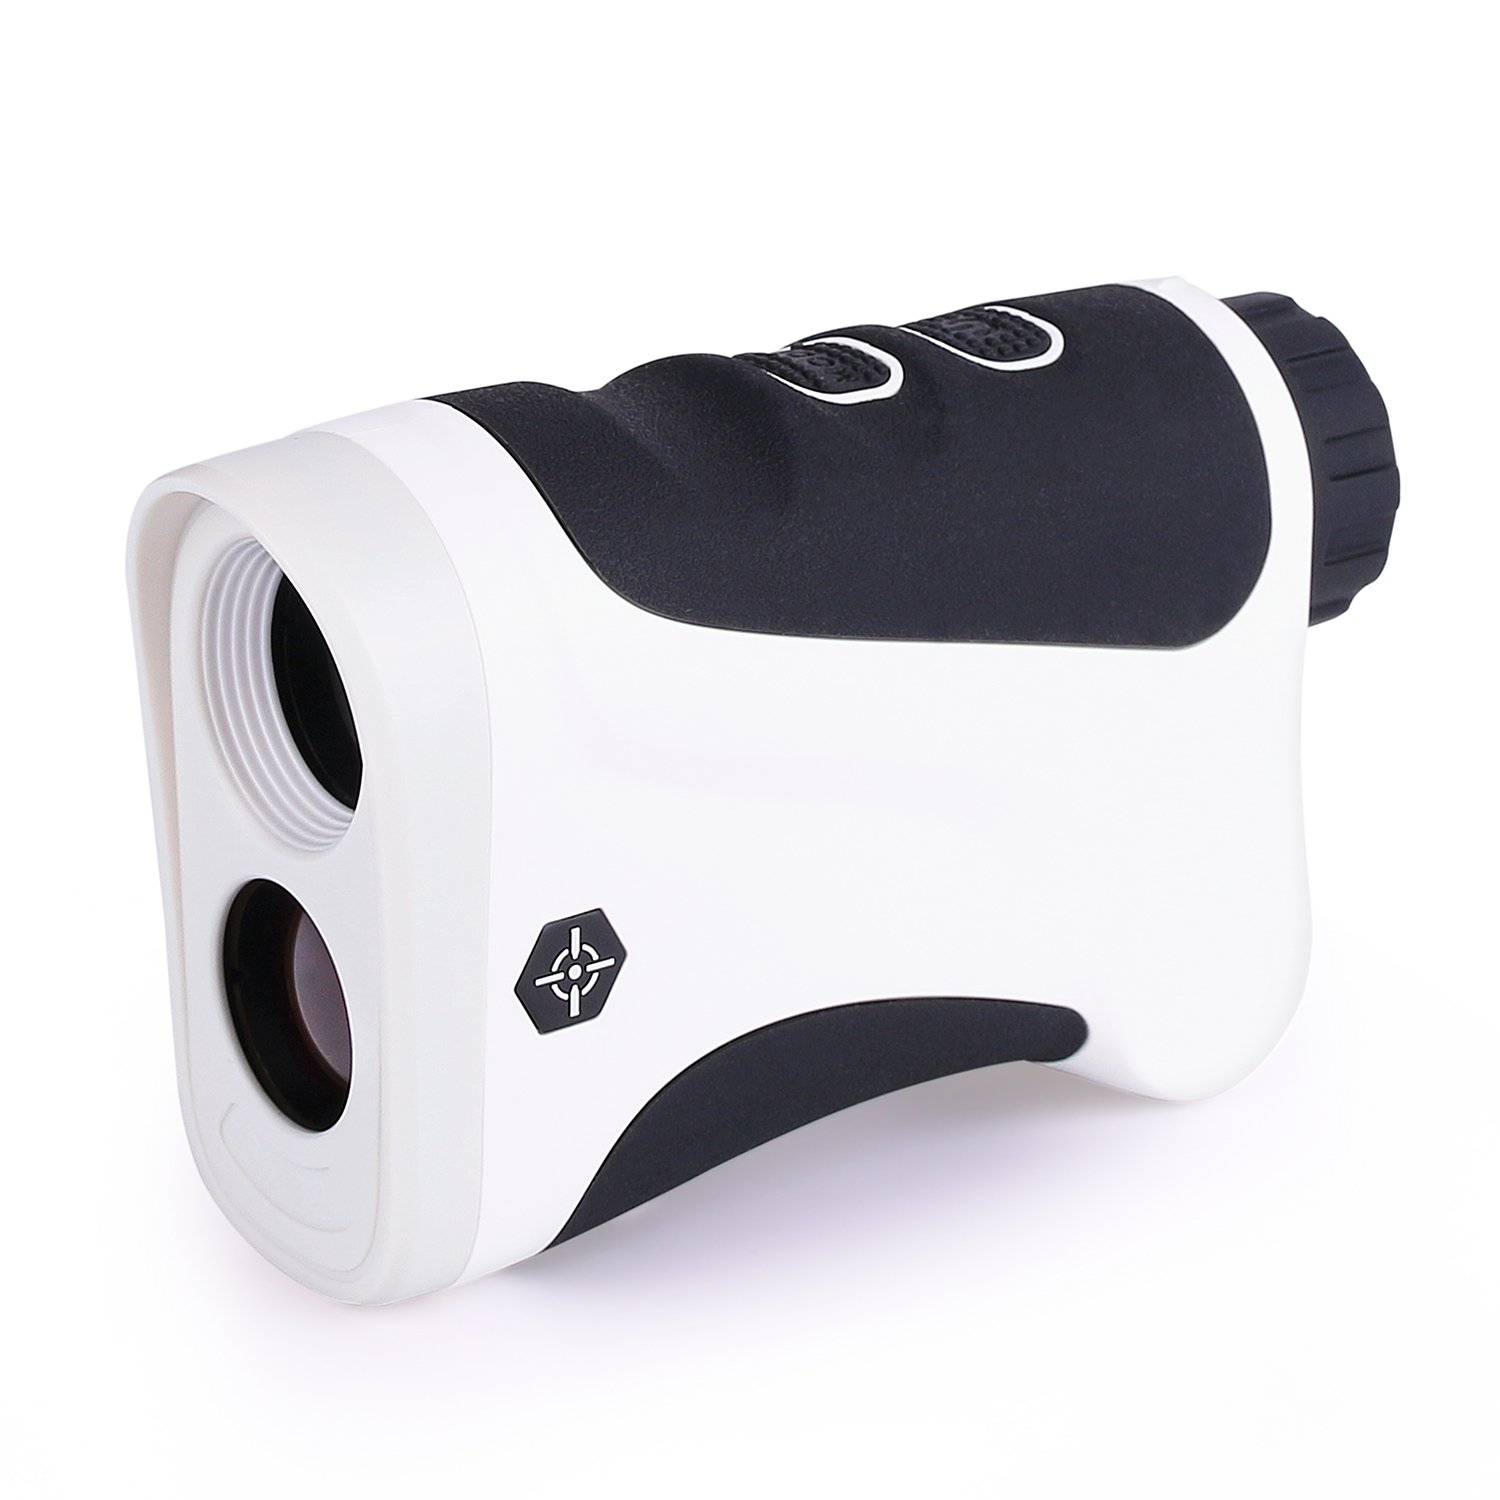 Golf Lrf Laser Range Finder,Portable Outdoor Sports Golf Rangefinder,Range:600M by Golf Lrf